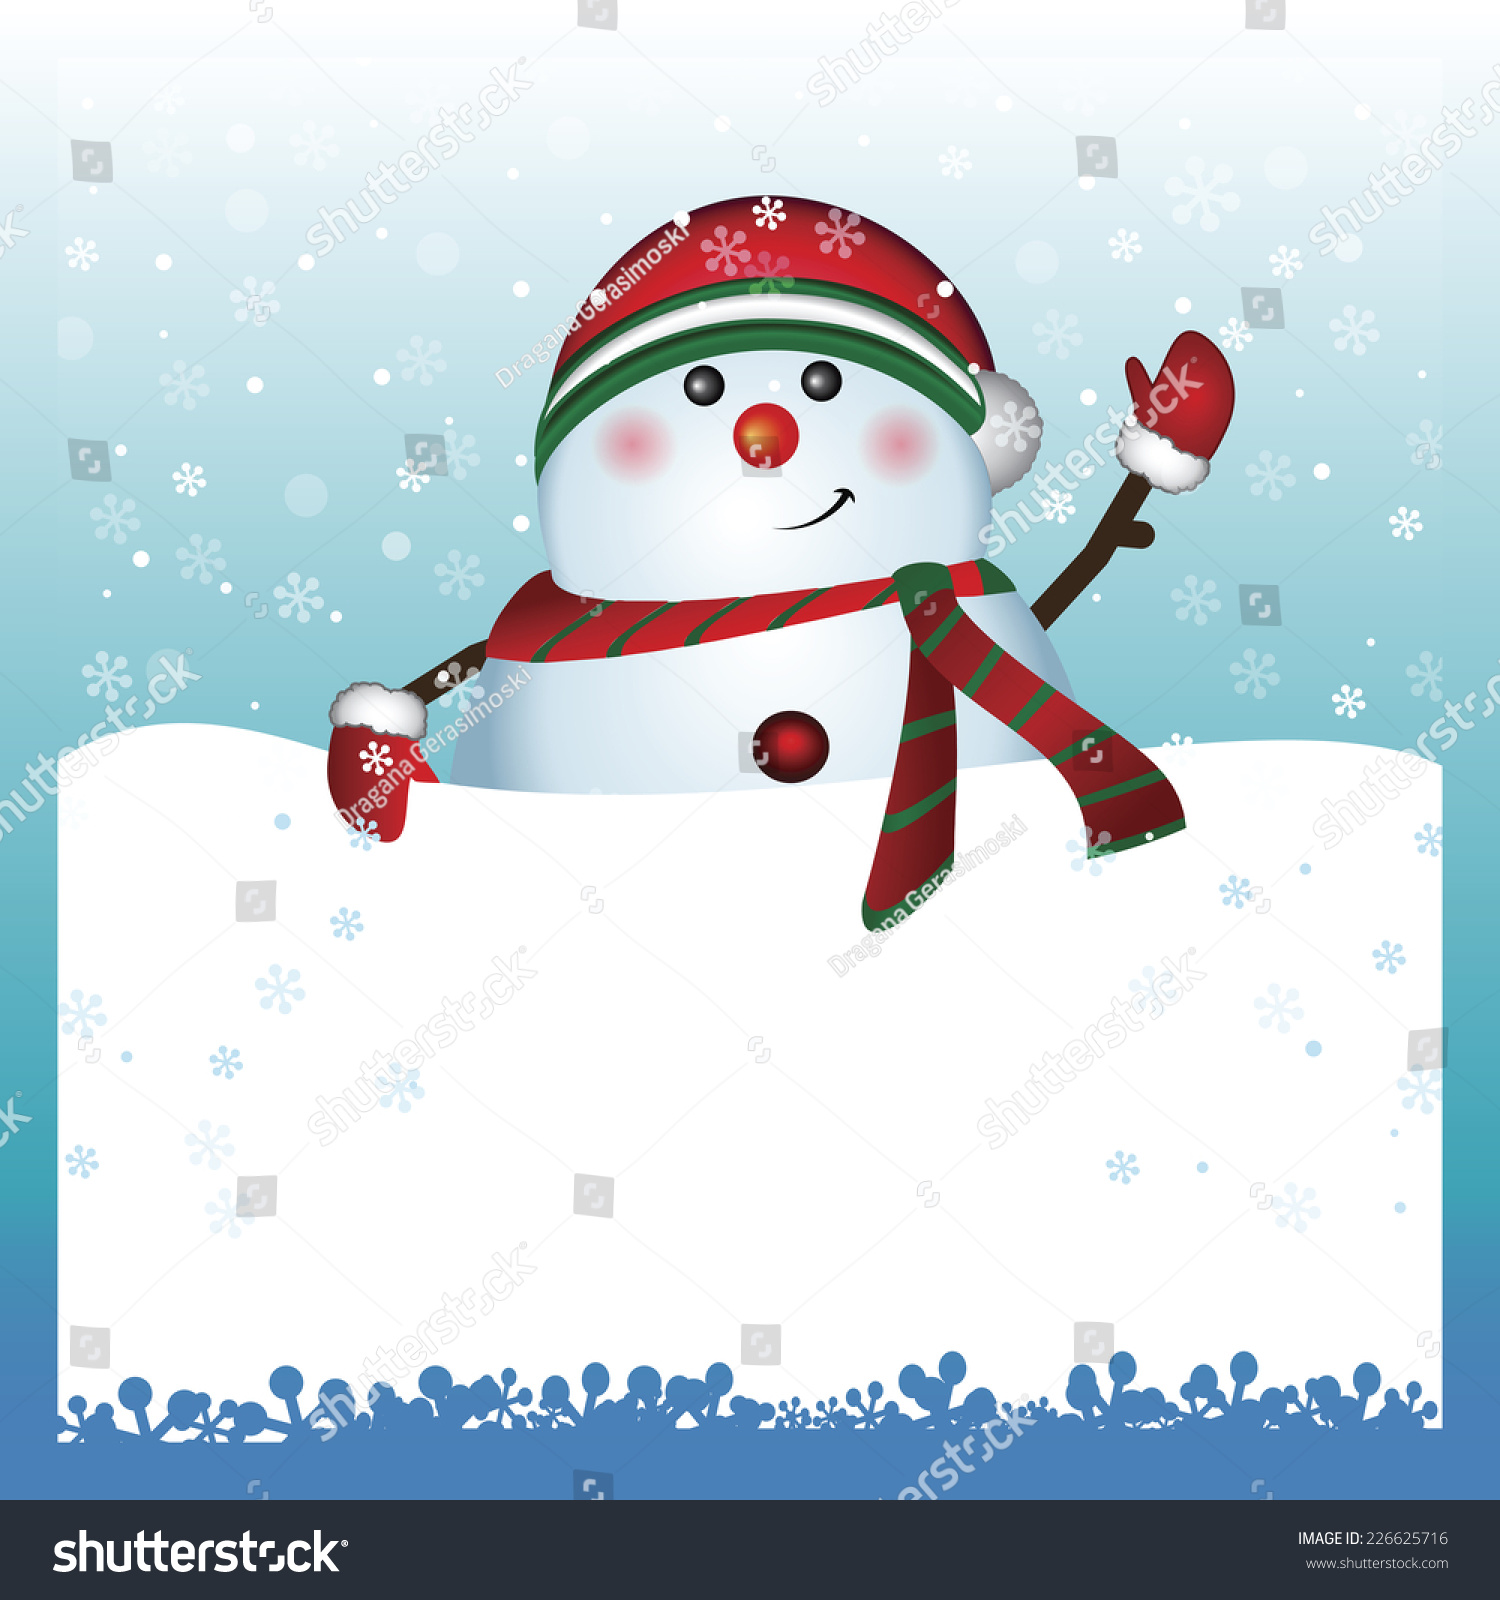 Snowman With Banner Christmas And New Year Text Greeting Card